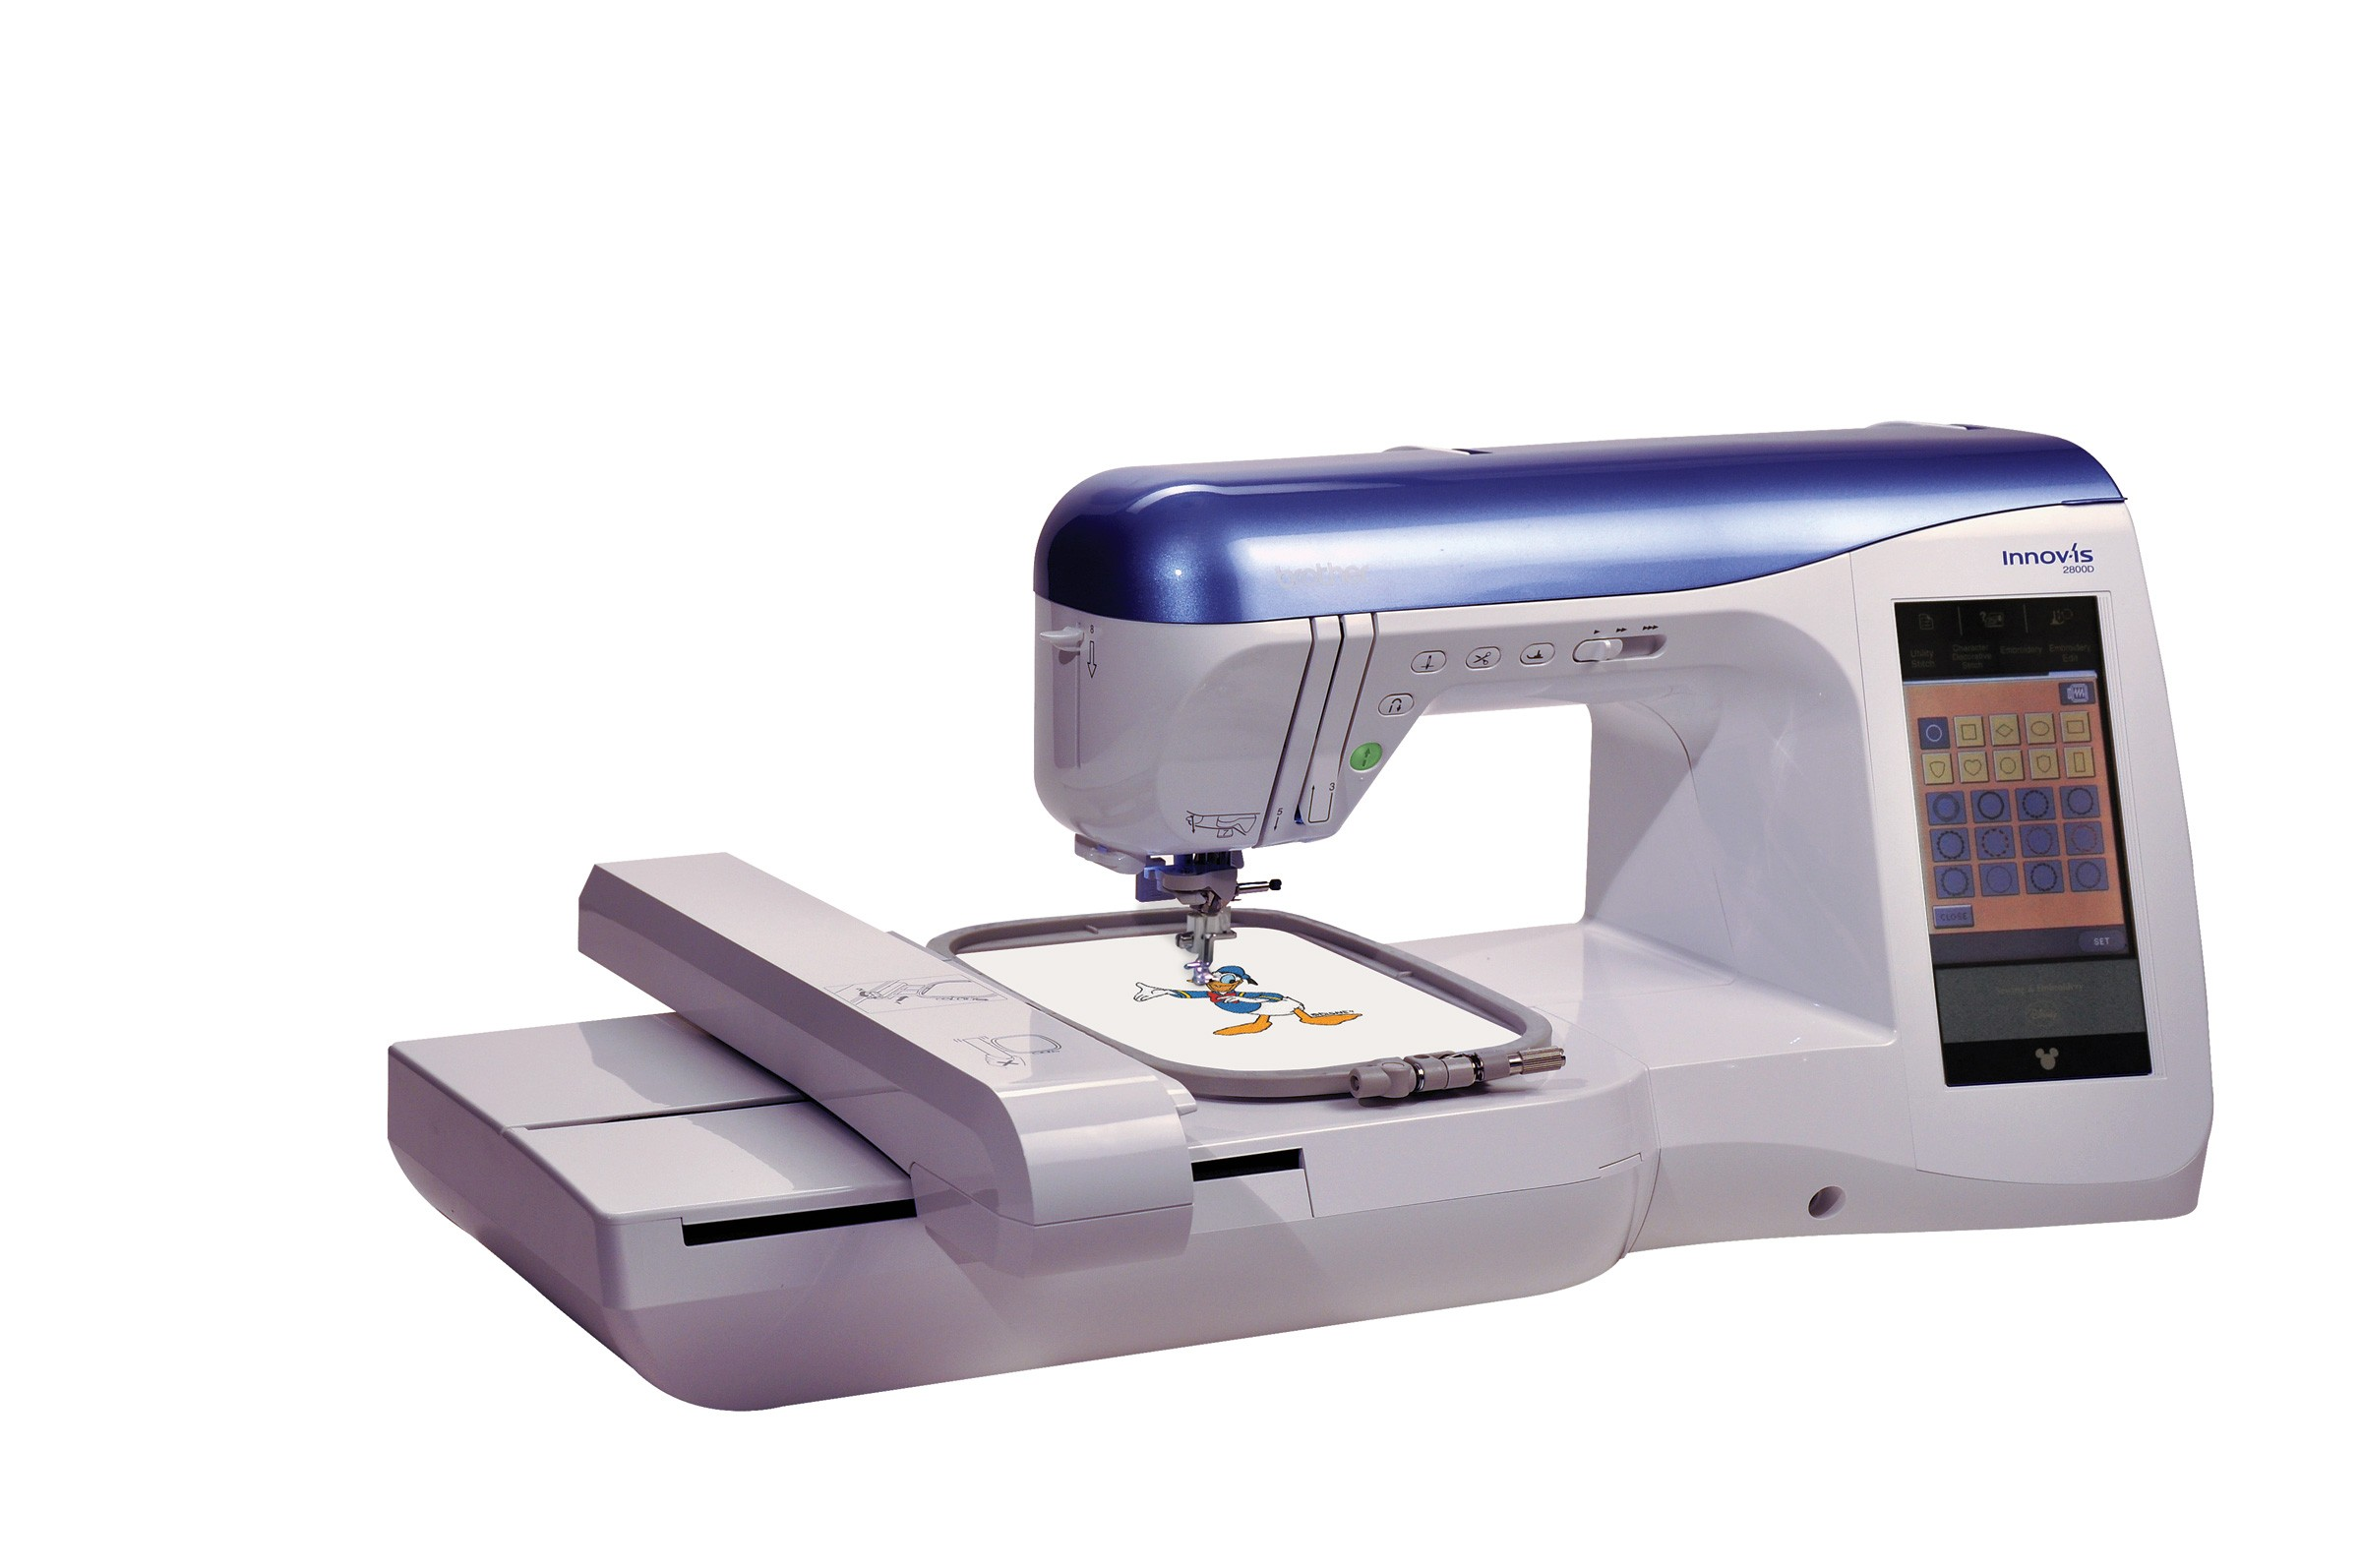 Brother Innov-is 2800D-Sewing & Embroidery